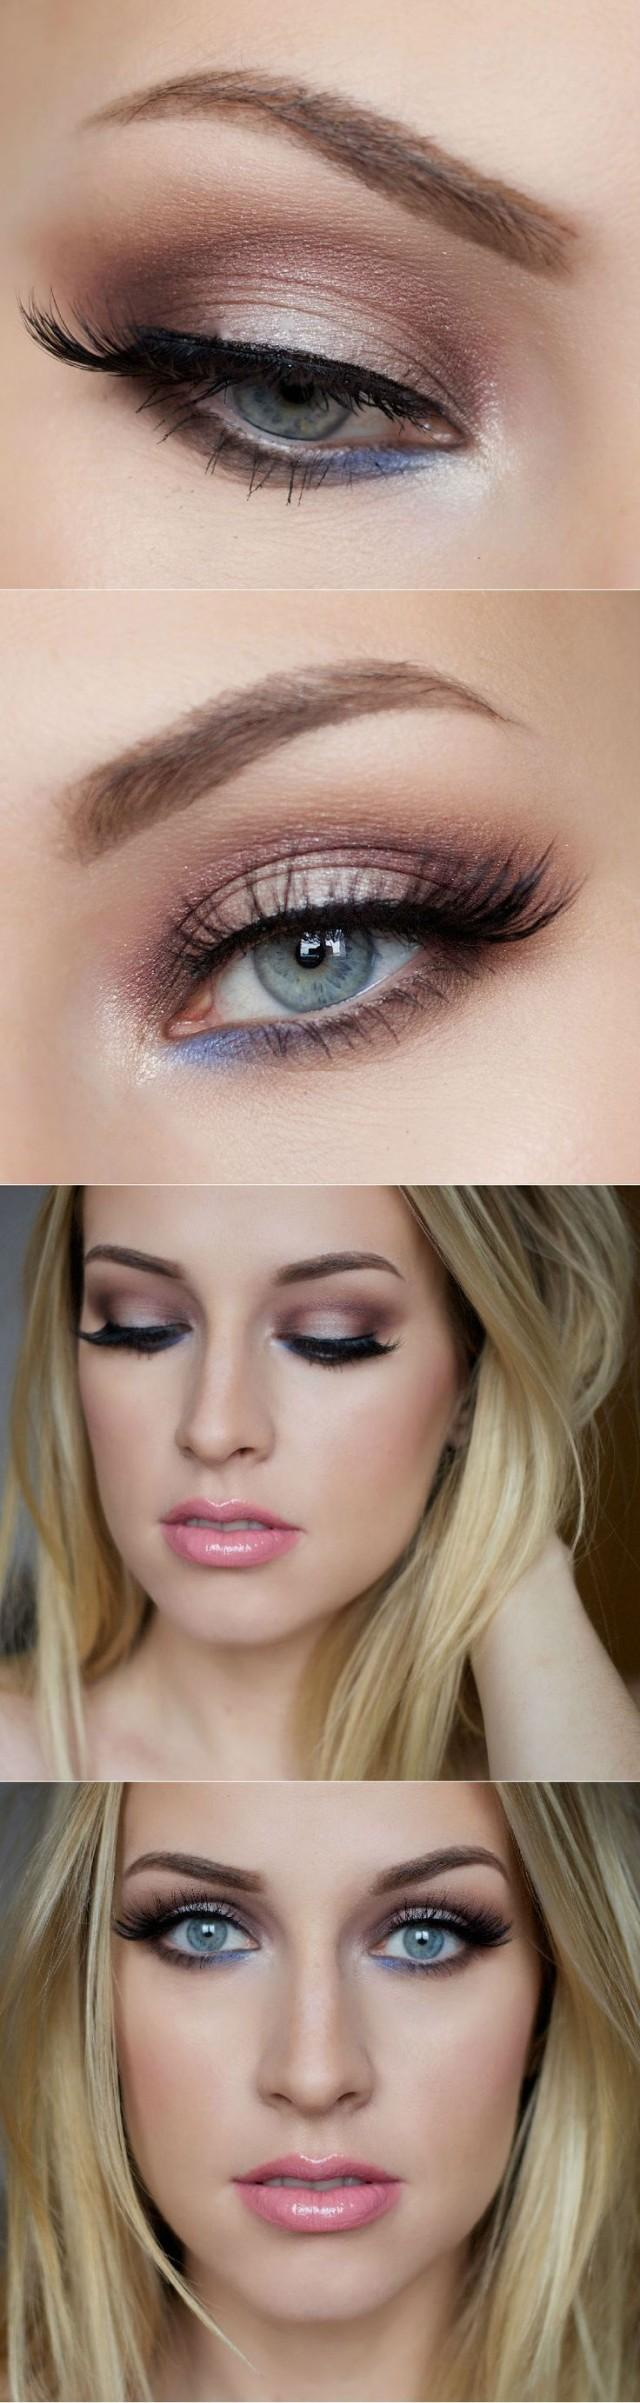 ماكياج - makeup tips for blue eyes and fair skin #2535850